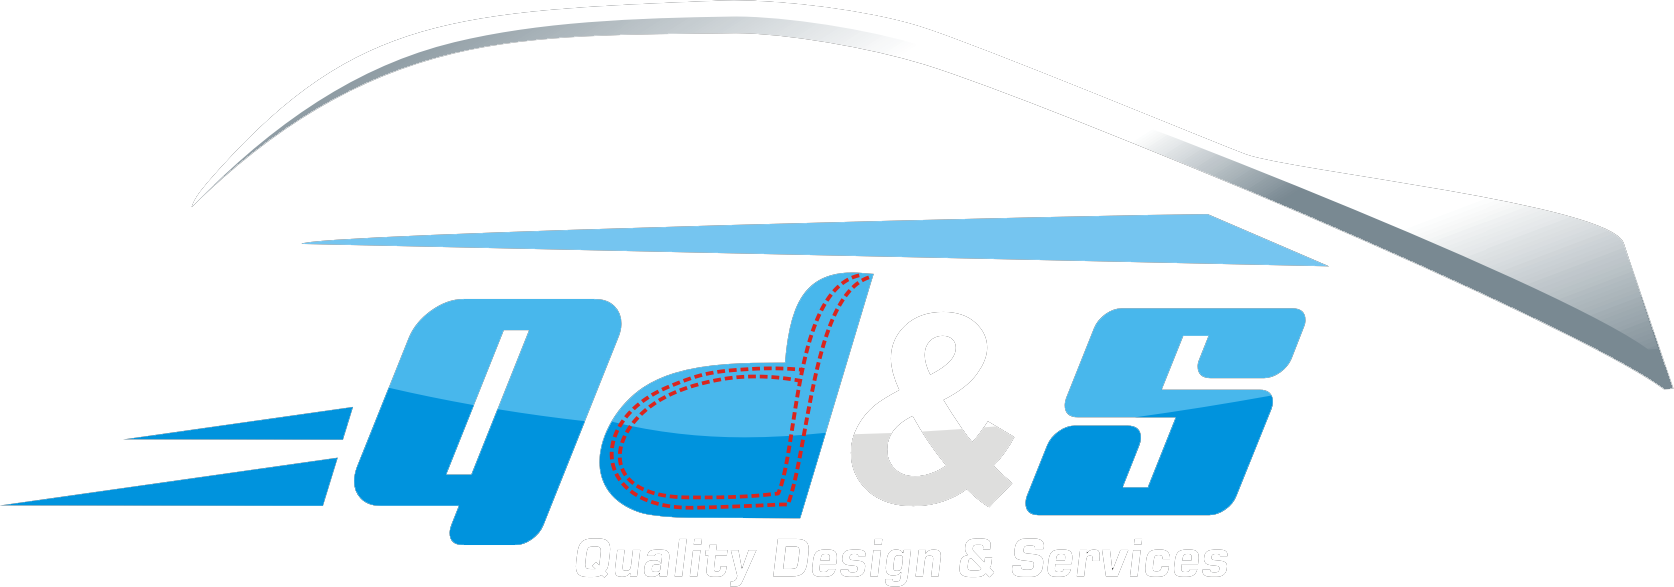 Quality Design & Services logo